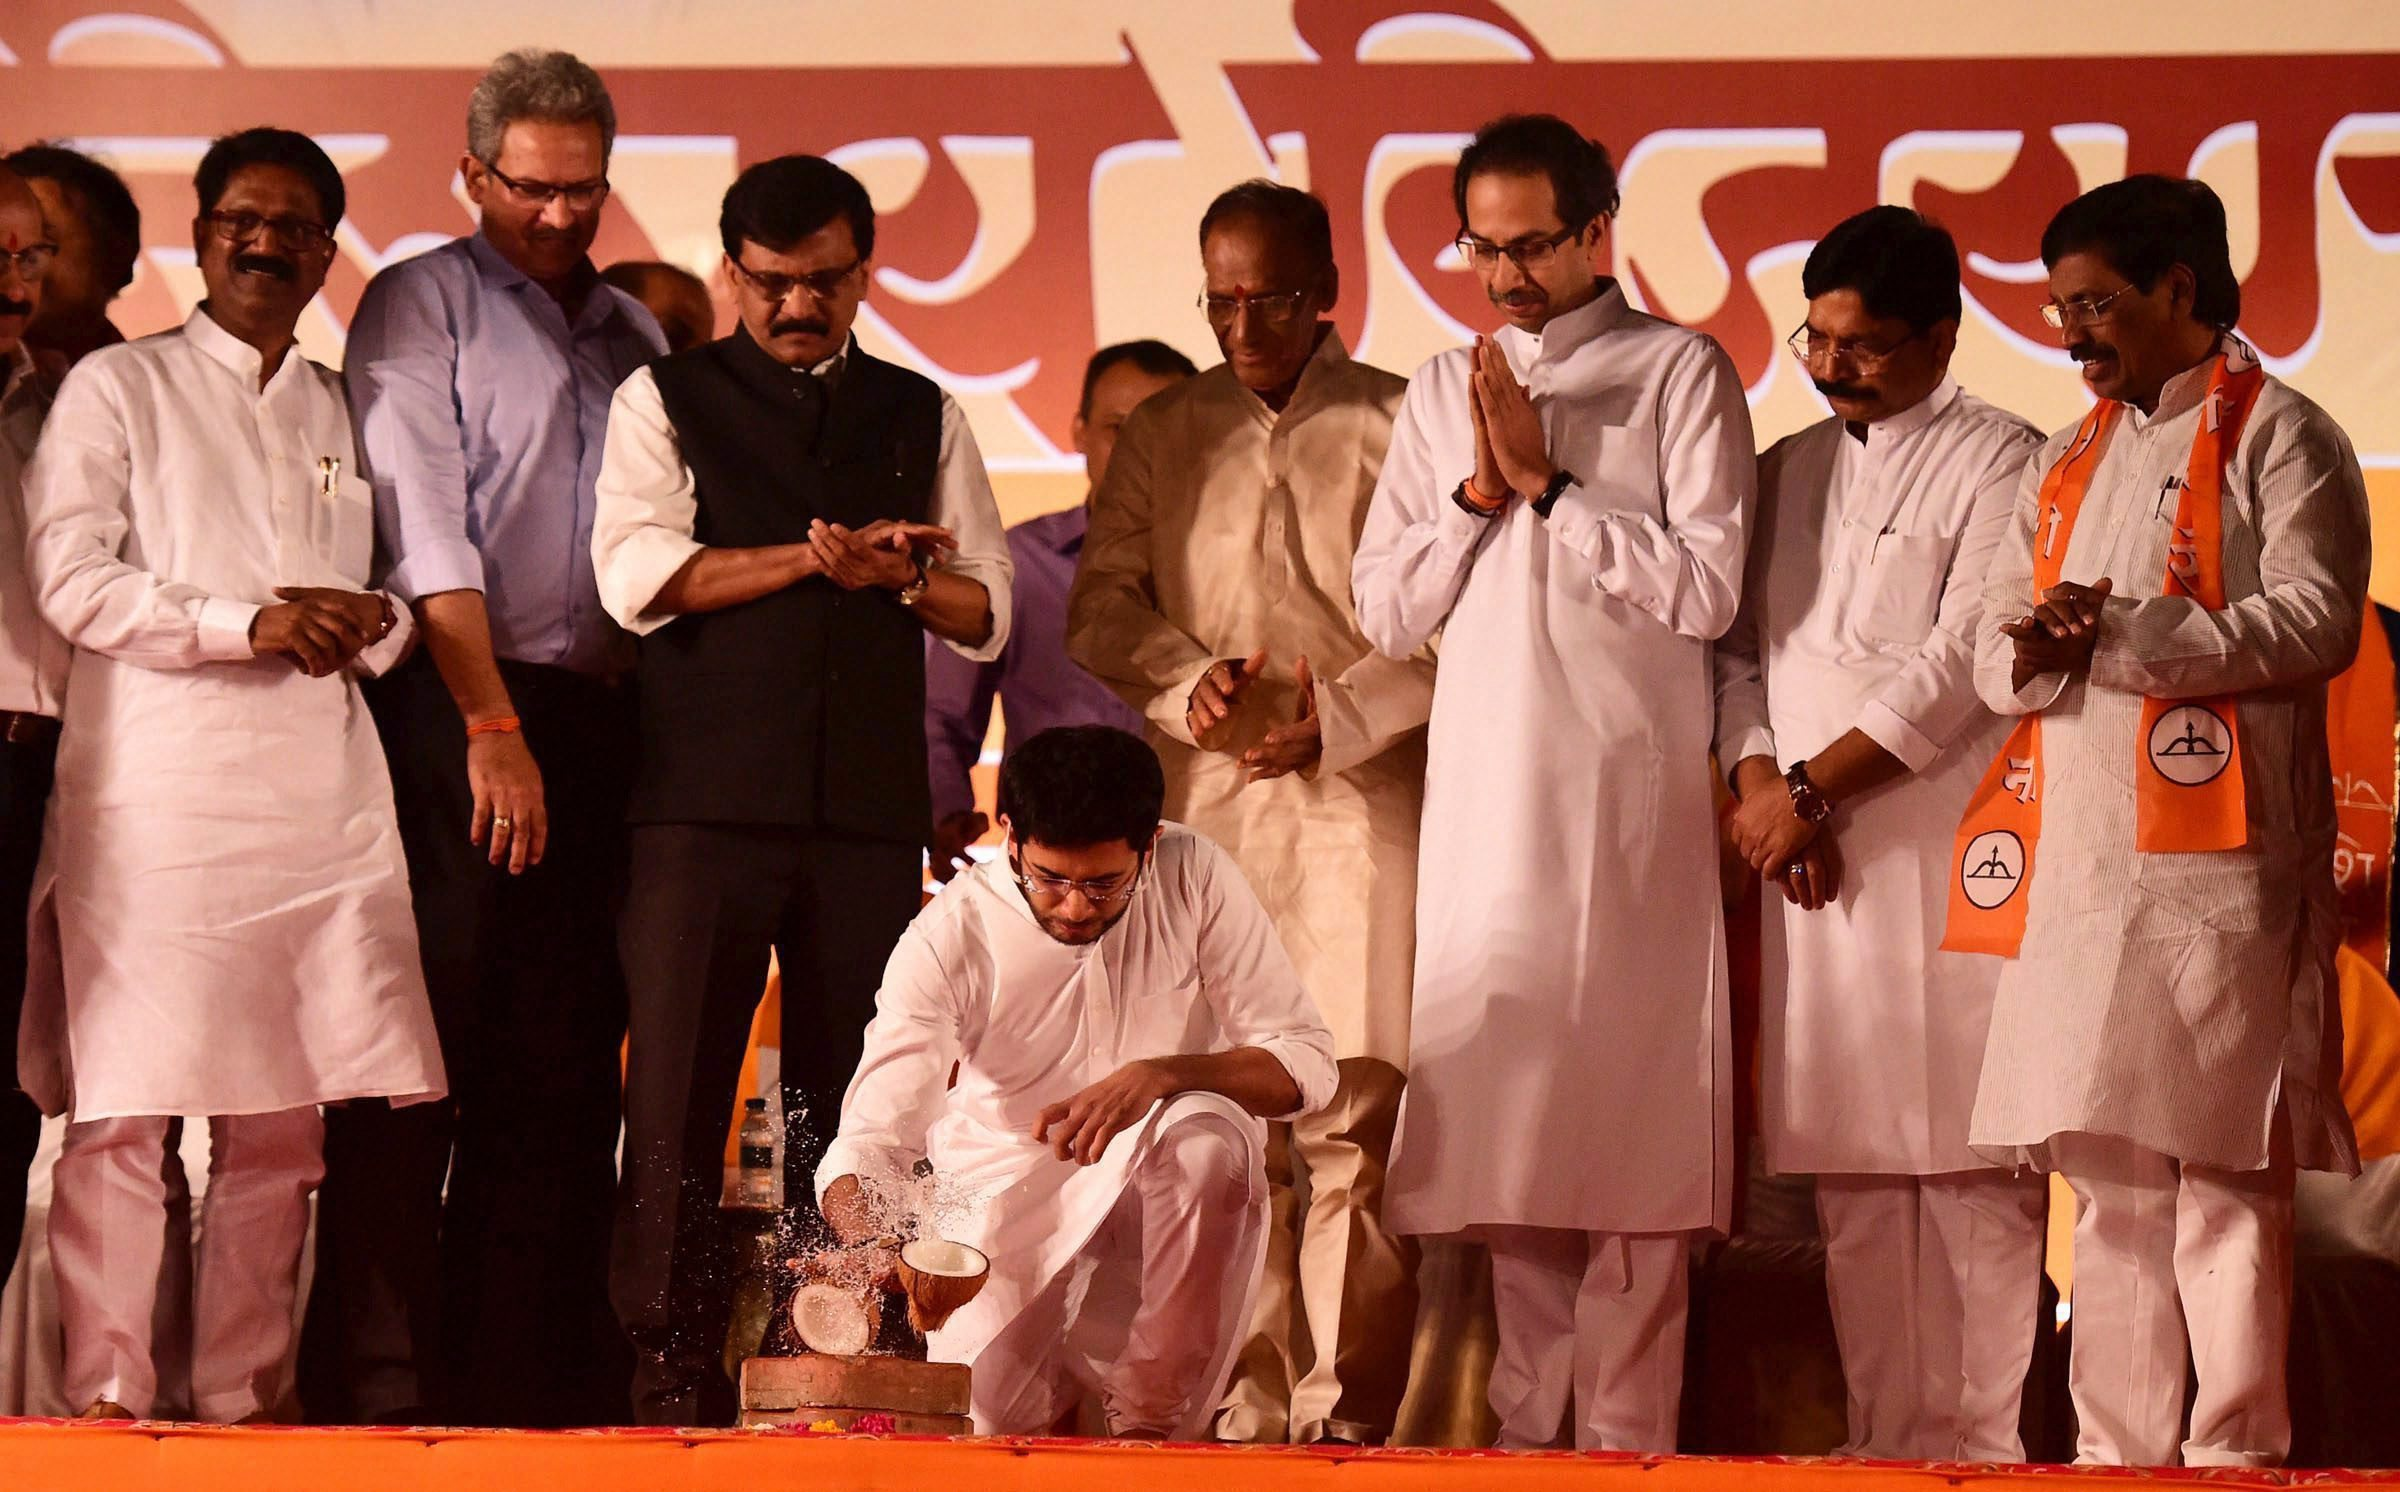 Mumbai: Shiv Sena president Uddhav Thackeray with son Aditya Thackeray and other leaders during the first rally for the Brihanmumbai Municipal Corporation (BMC) polls in Mumbai on Saturday. PTI Photo by Santosh Hirlekar(PTI2_4_2017_000250A)